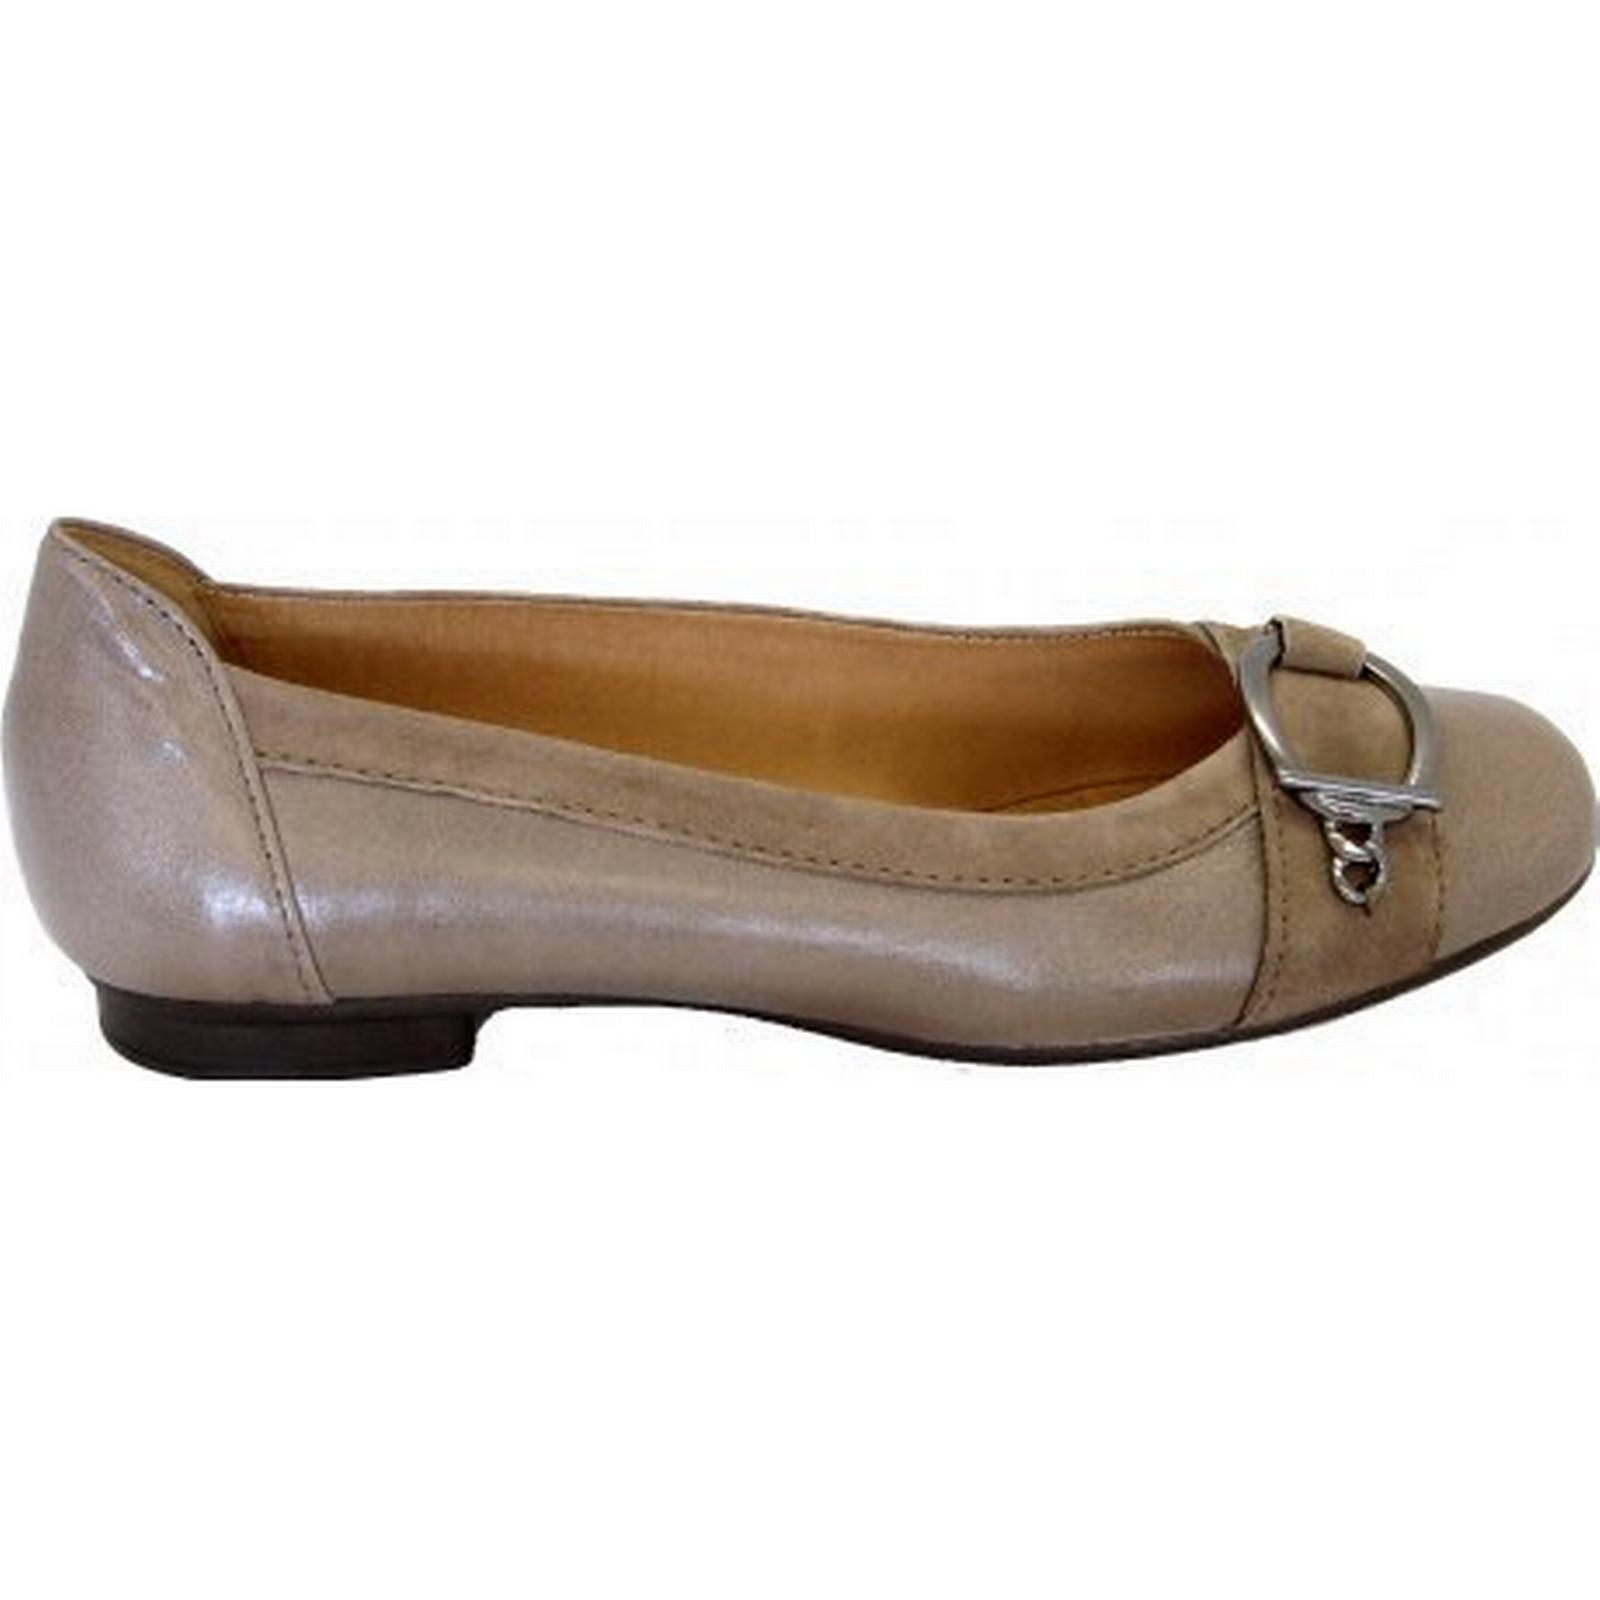 Gabor VIRGINIA GABOR SHOES VIRGINIA VIRGINIA SHOES 54 114 12 Size: 4.5, Colour: TAUPE f96a39